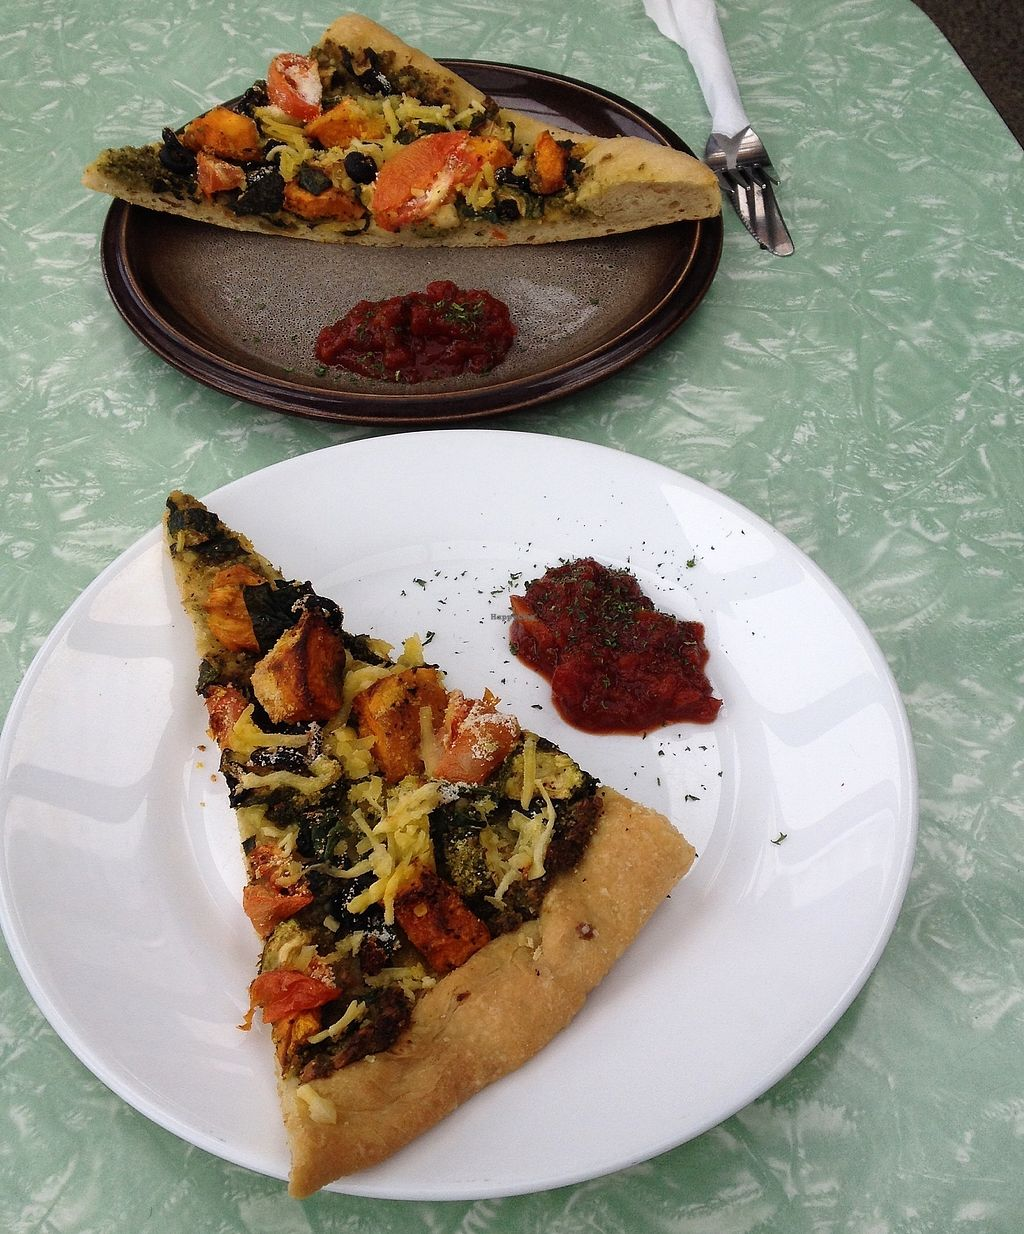 """Photo of Beat Street Cafe  by <a href=""""/members/profile/Gravenhale"""">Gravenhale</a> <br/>Vegan pizza <br/> September 2, 2017  - <a href='/contact/abuse/image/52800/299951'>Report</a>"""